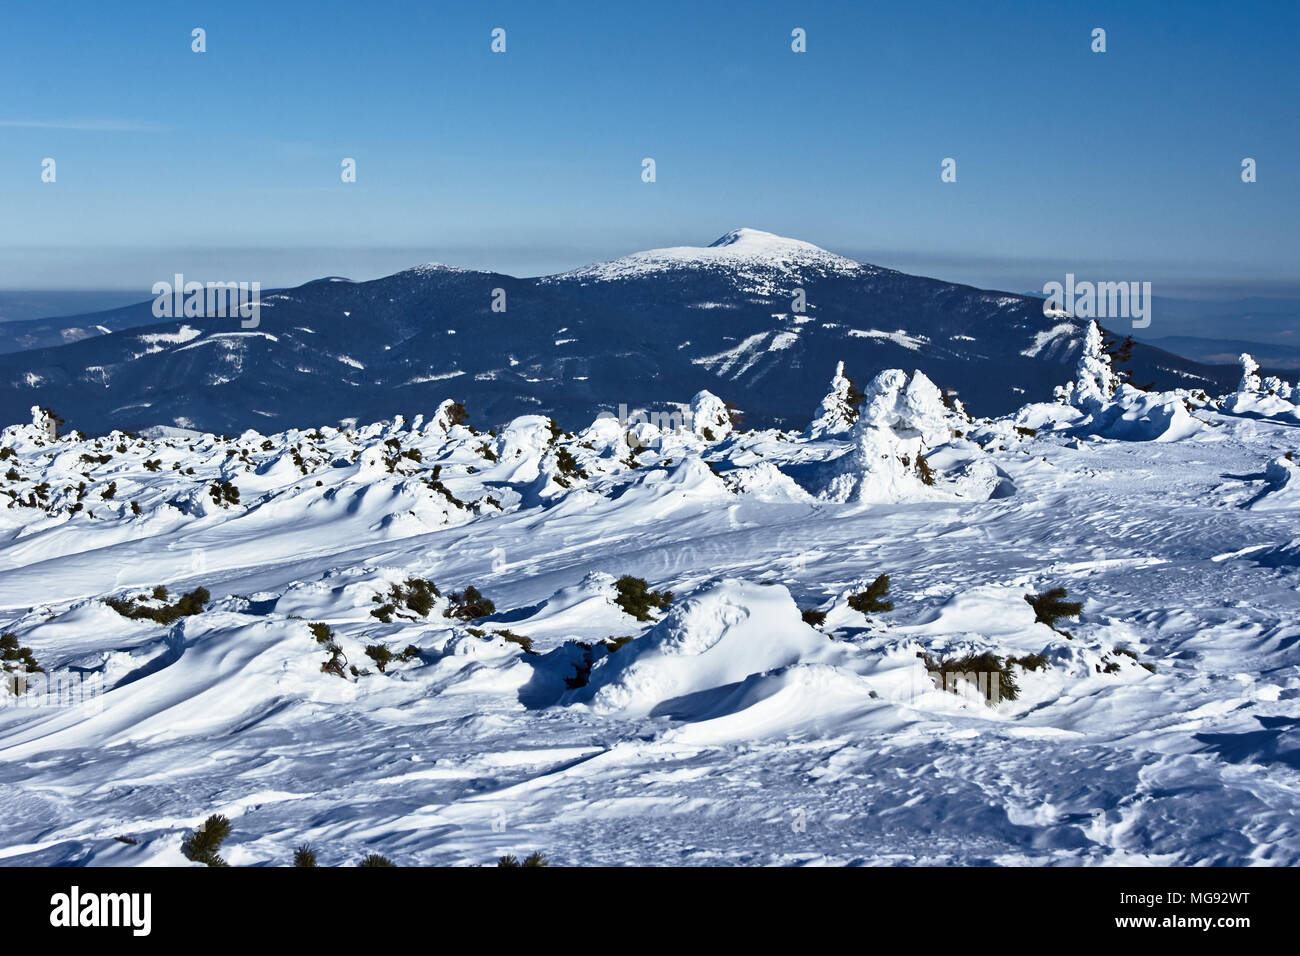 Snow-covered spruces and a view of the Babia Gora mountain in Poland - Stock Image